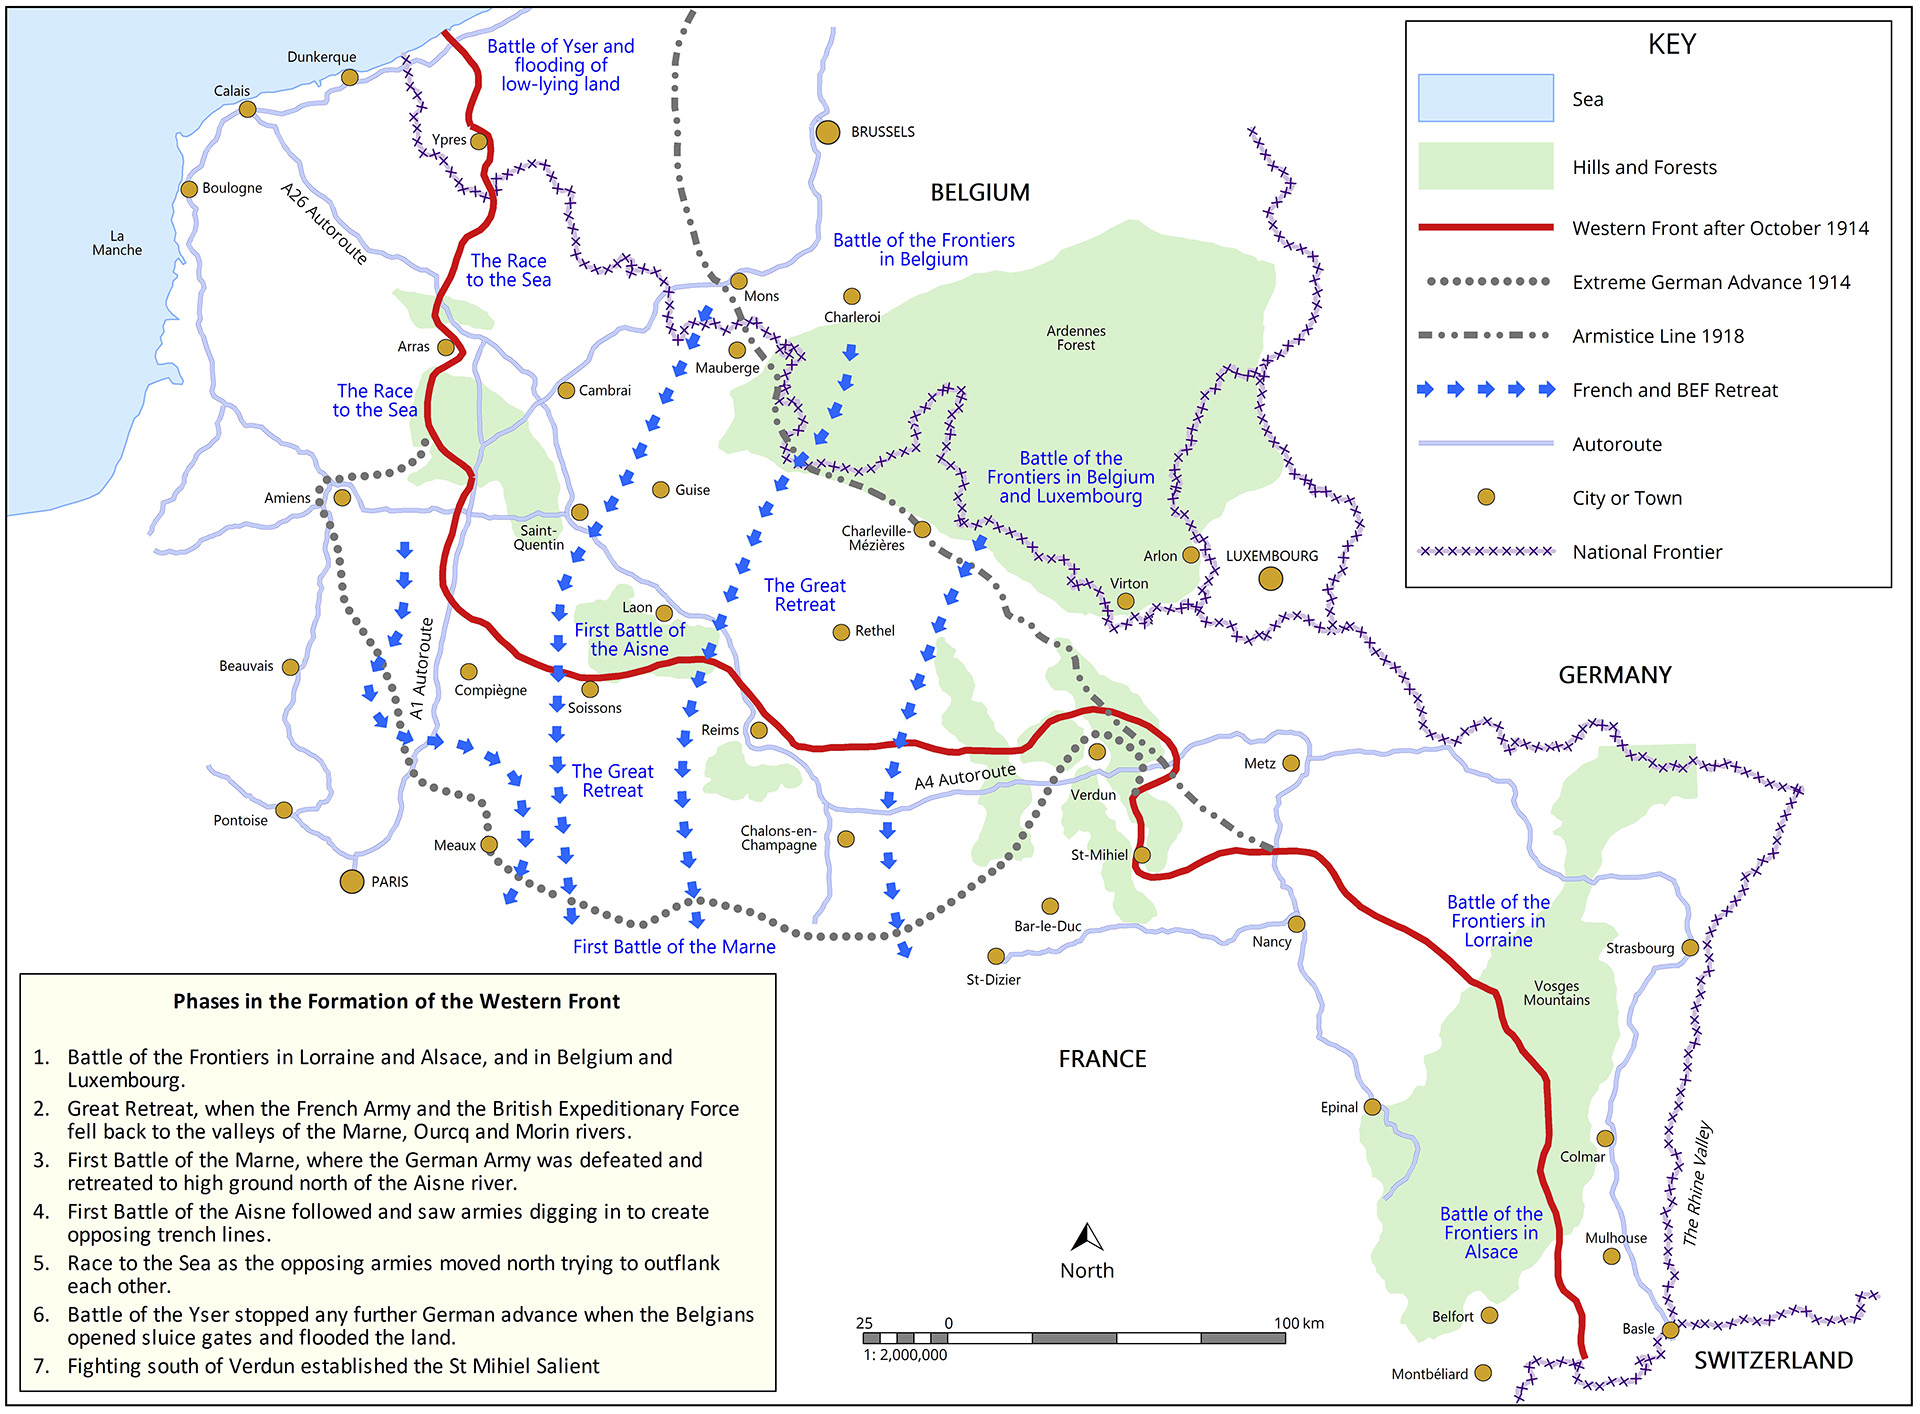 How the Western Front came to lie along this line: main battles and army movements which determined the position of the front by late October 1914